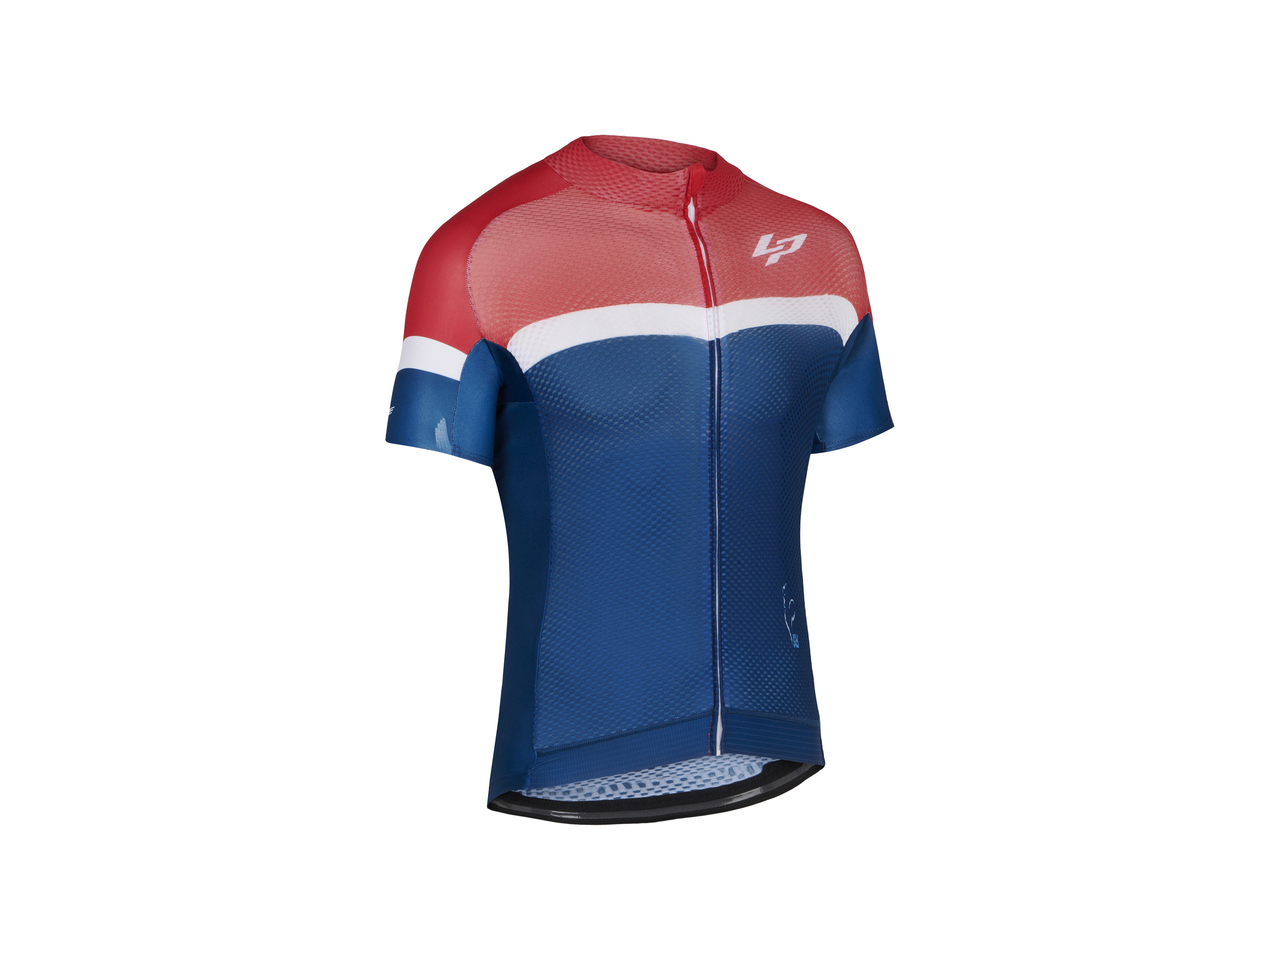 Lapierre cycling jersey Ultimate SL Cauberg- front